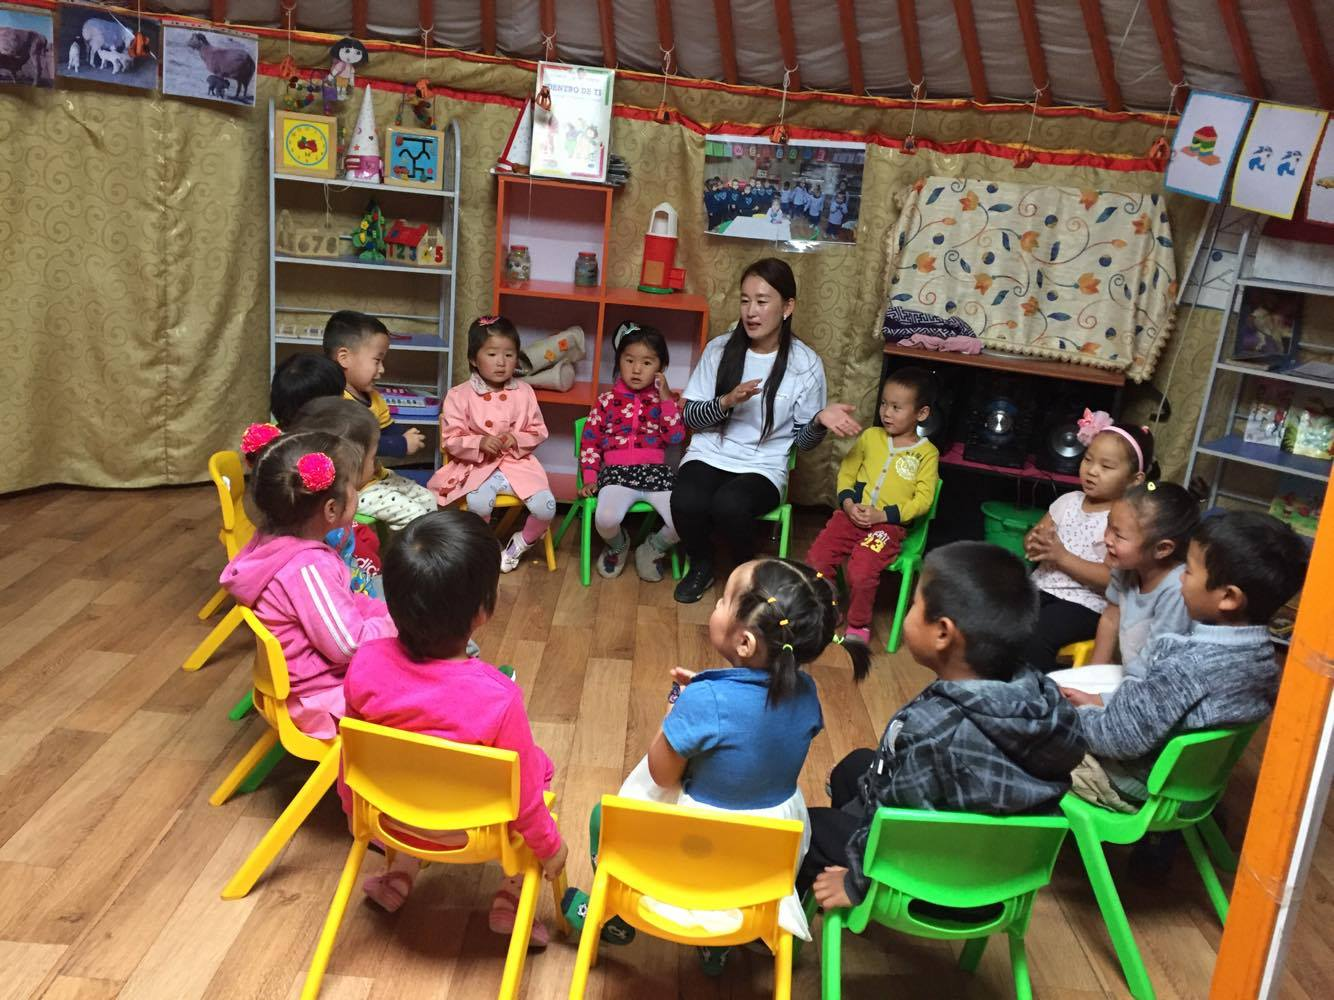 Helping the future: How we support children through day care